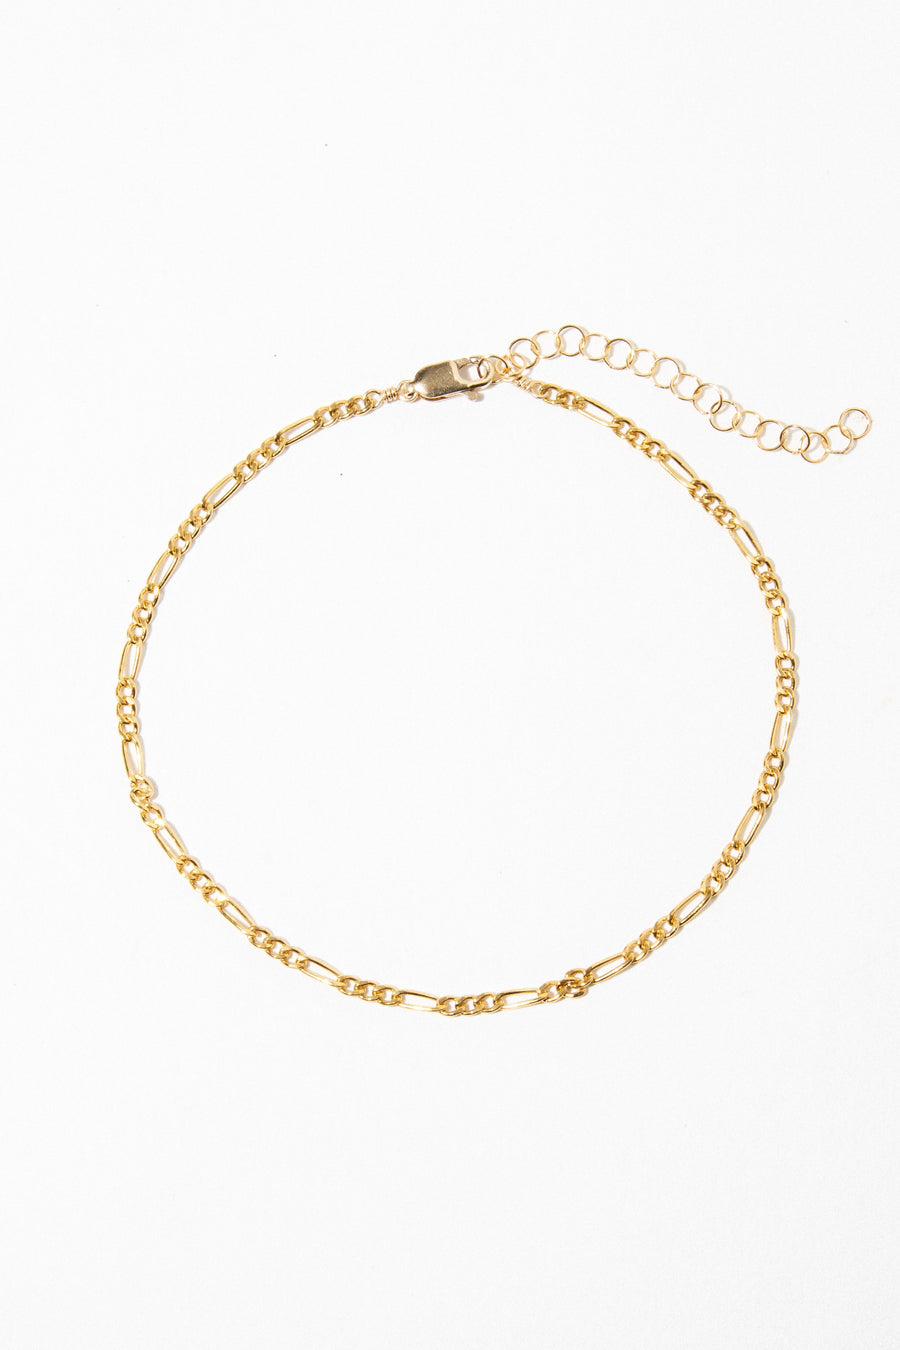 CGM Jewelry Gold Piccolo Anklet